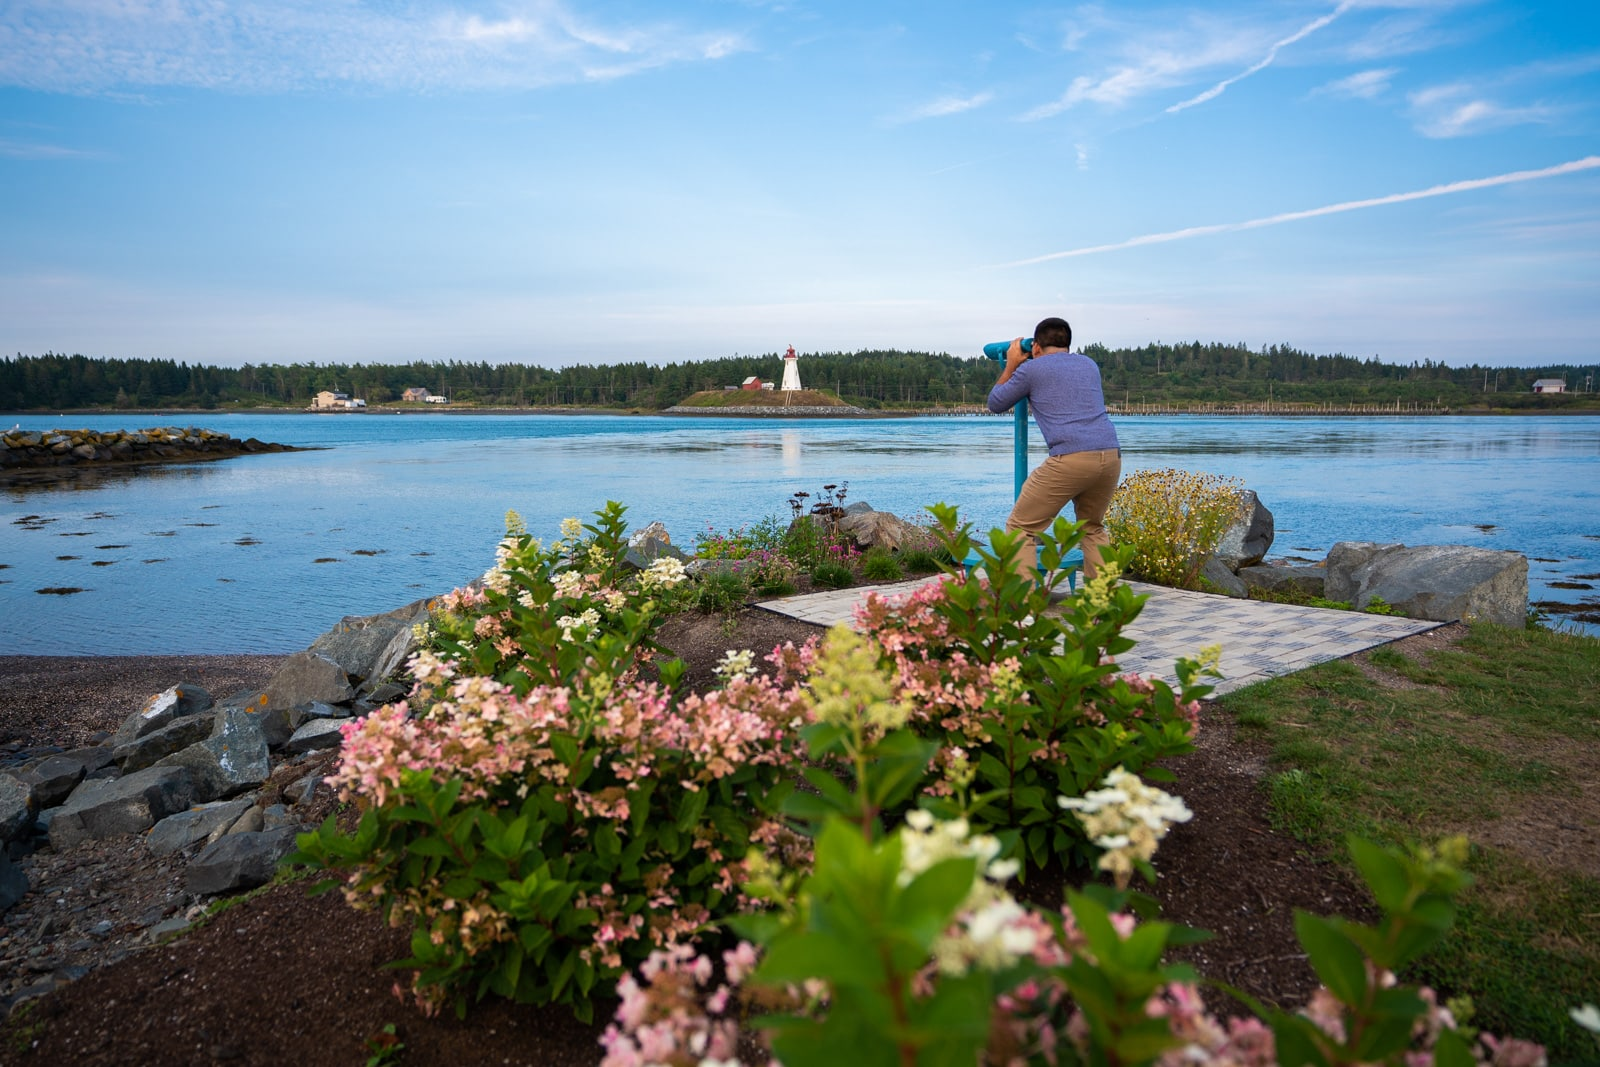 Views of water from Lubec, Maine